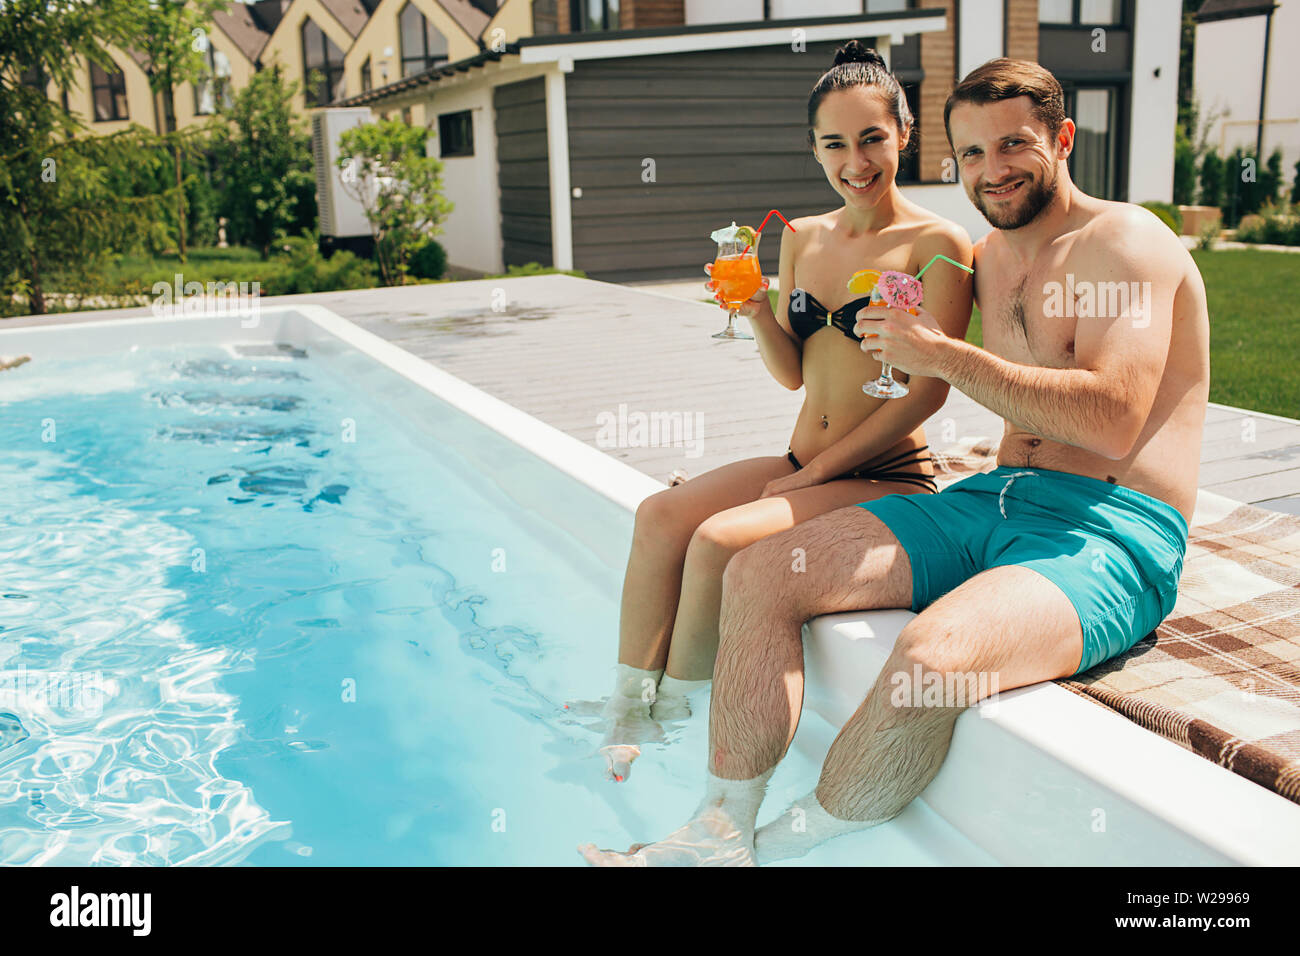 Lovely heteroseksual couple rented a house with a swimming pool. Man and woman sitting near water pool and holding fresh cocktail - Stock Image